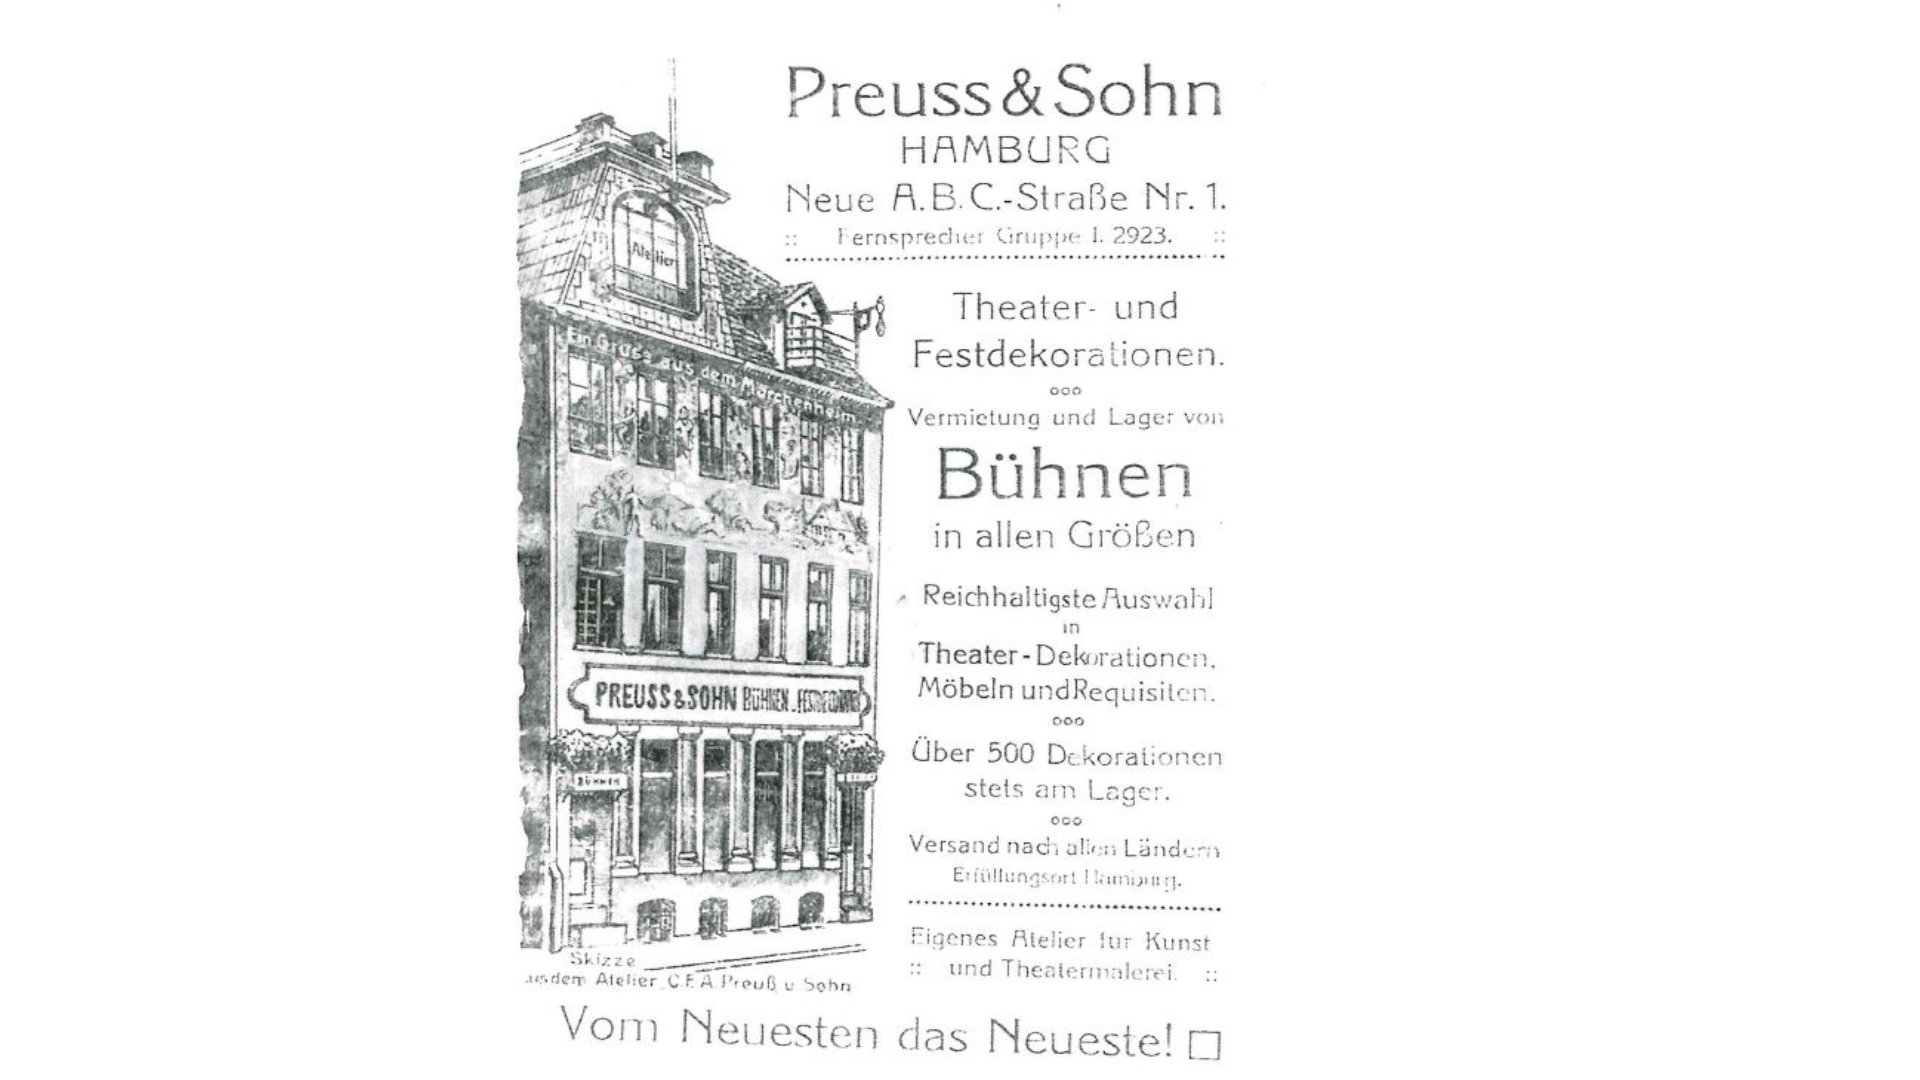 PREUSSMESSE_ABCStrasse_1920x1080